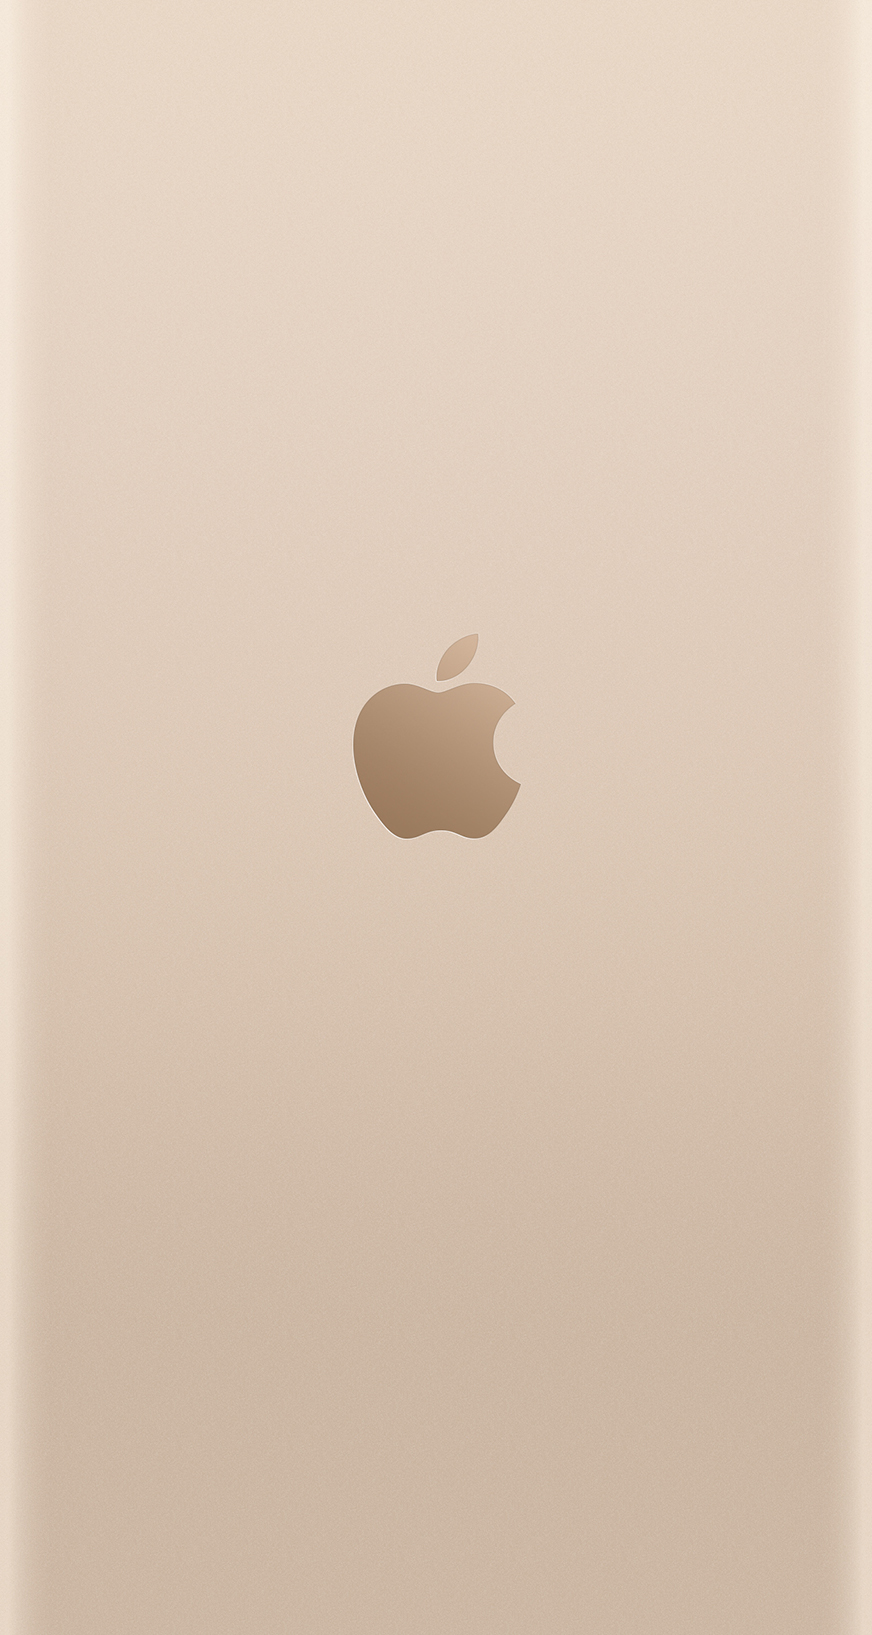 Apple logo wallpapers for iPhone 6 872x1635